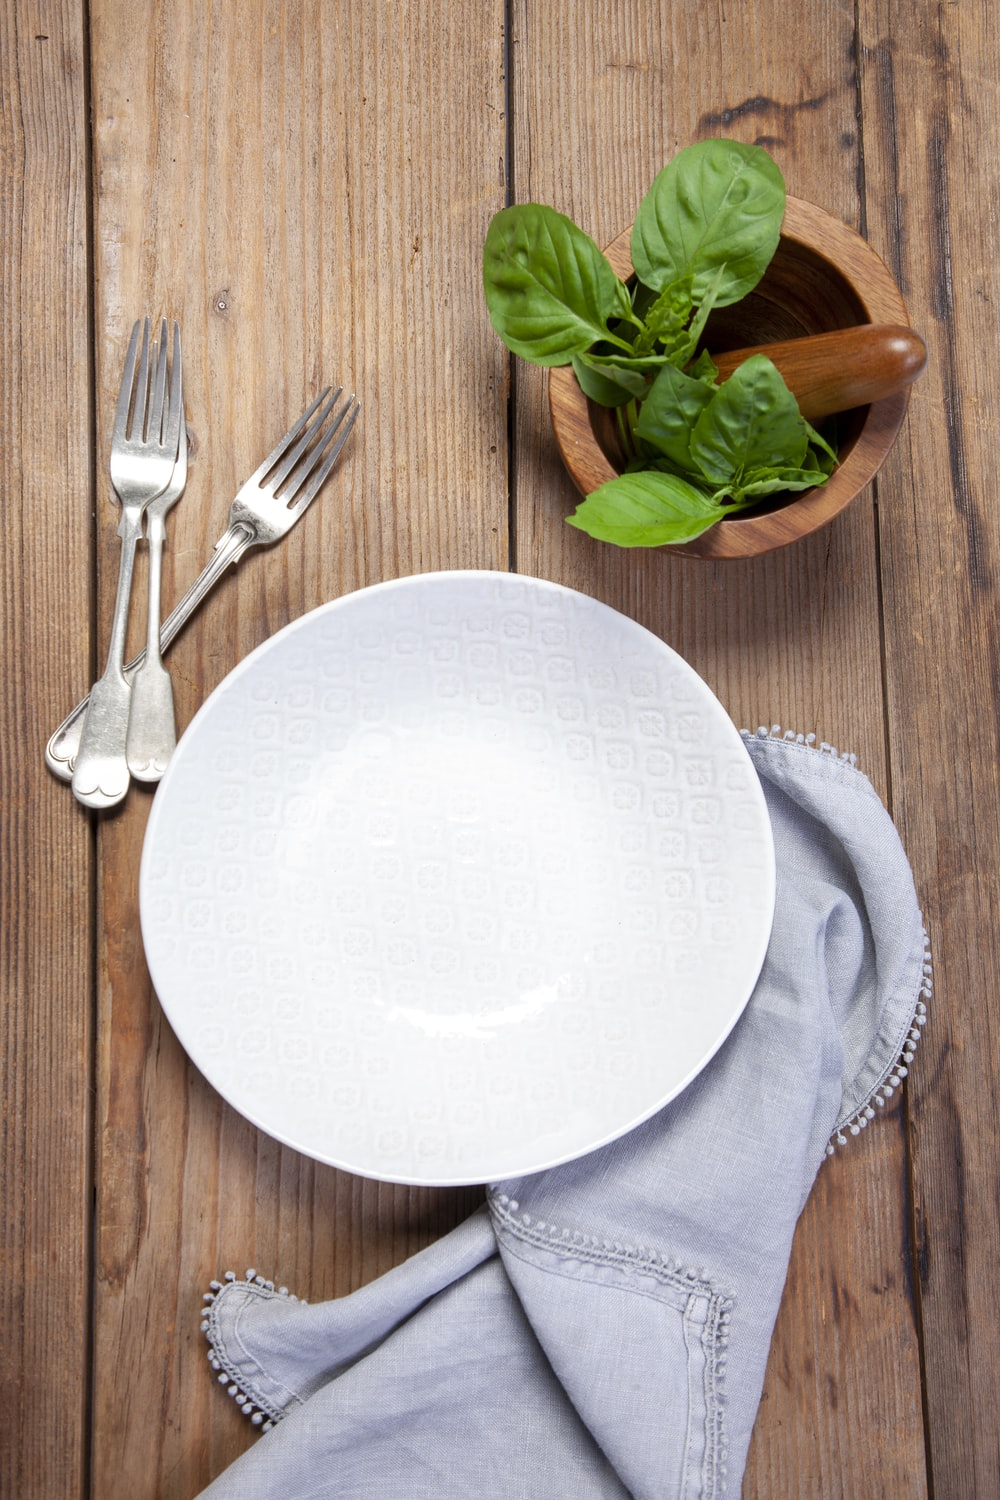 white ceramic plate beside stainless steel fork and bread knife